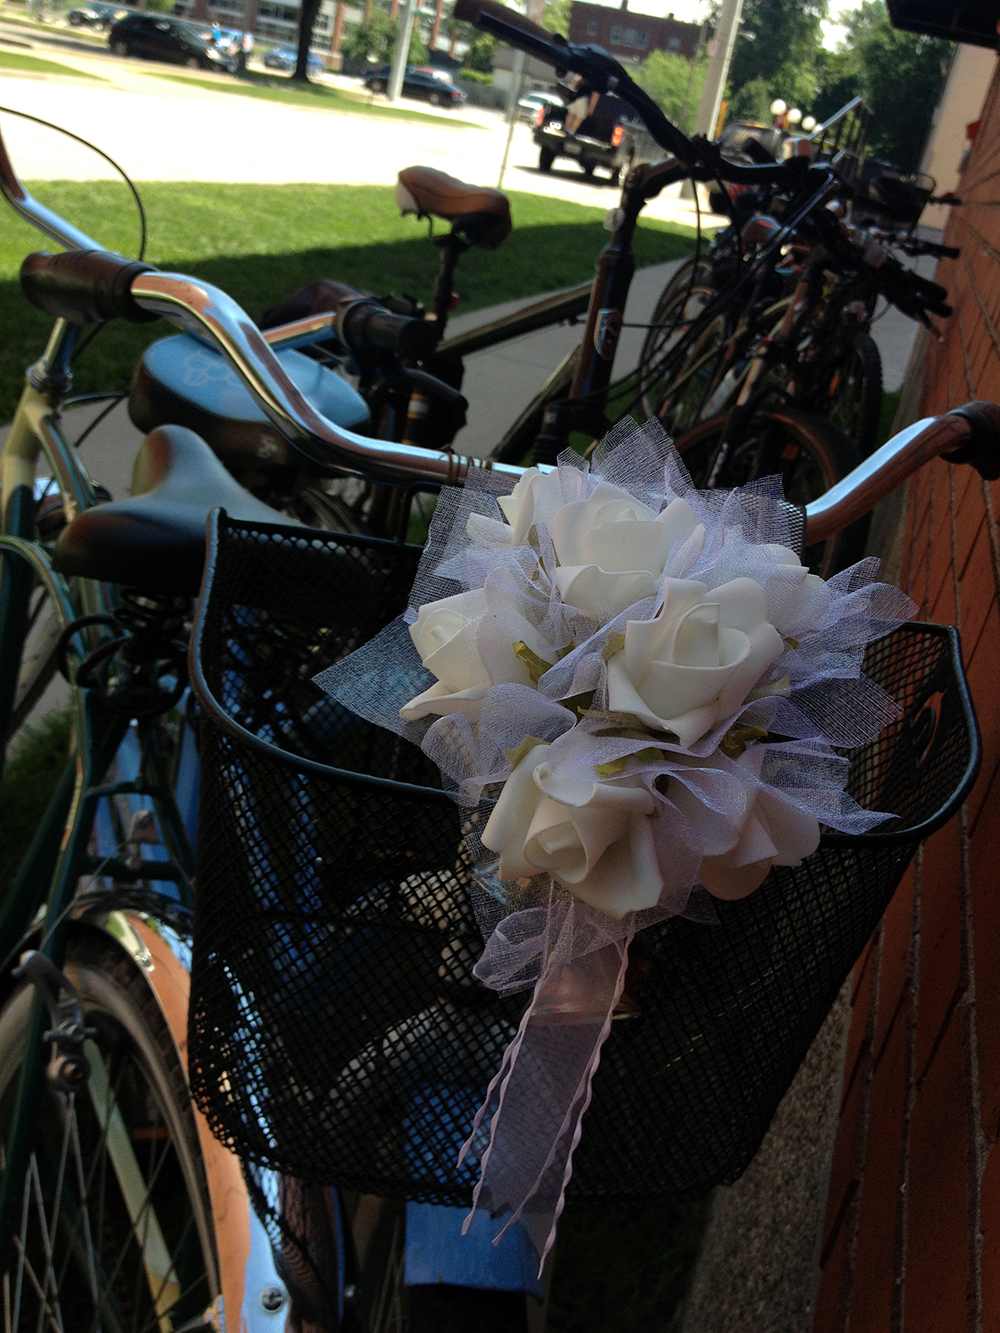 A decked out bike for one of the bachelorettes on our Bikes & Beers cycling tour